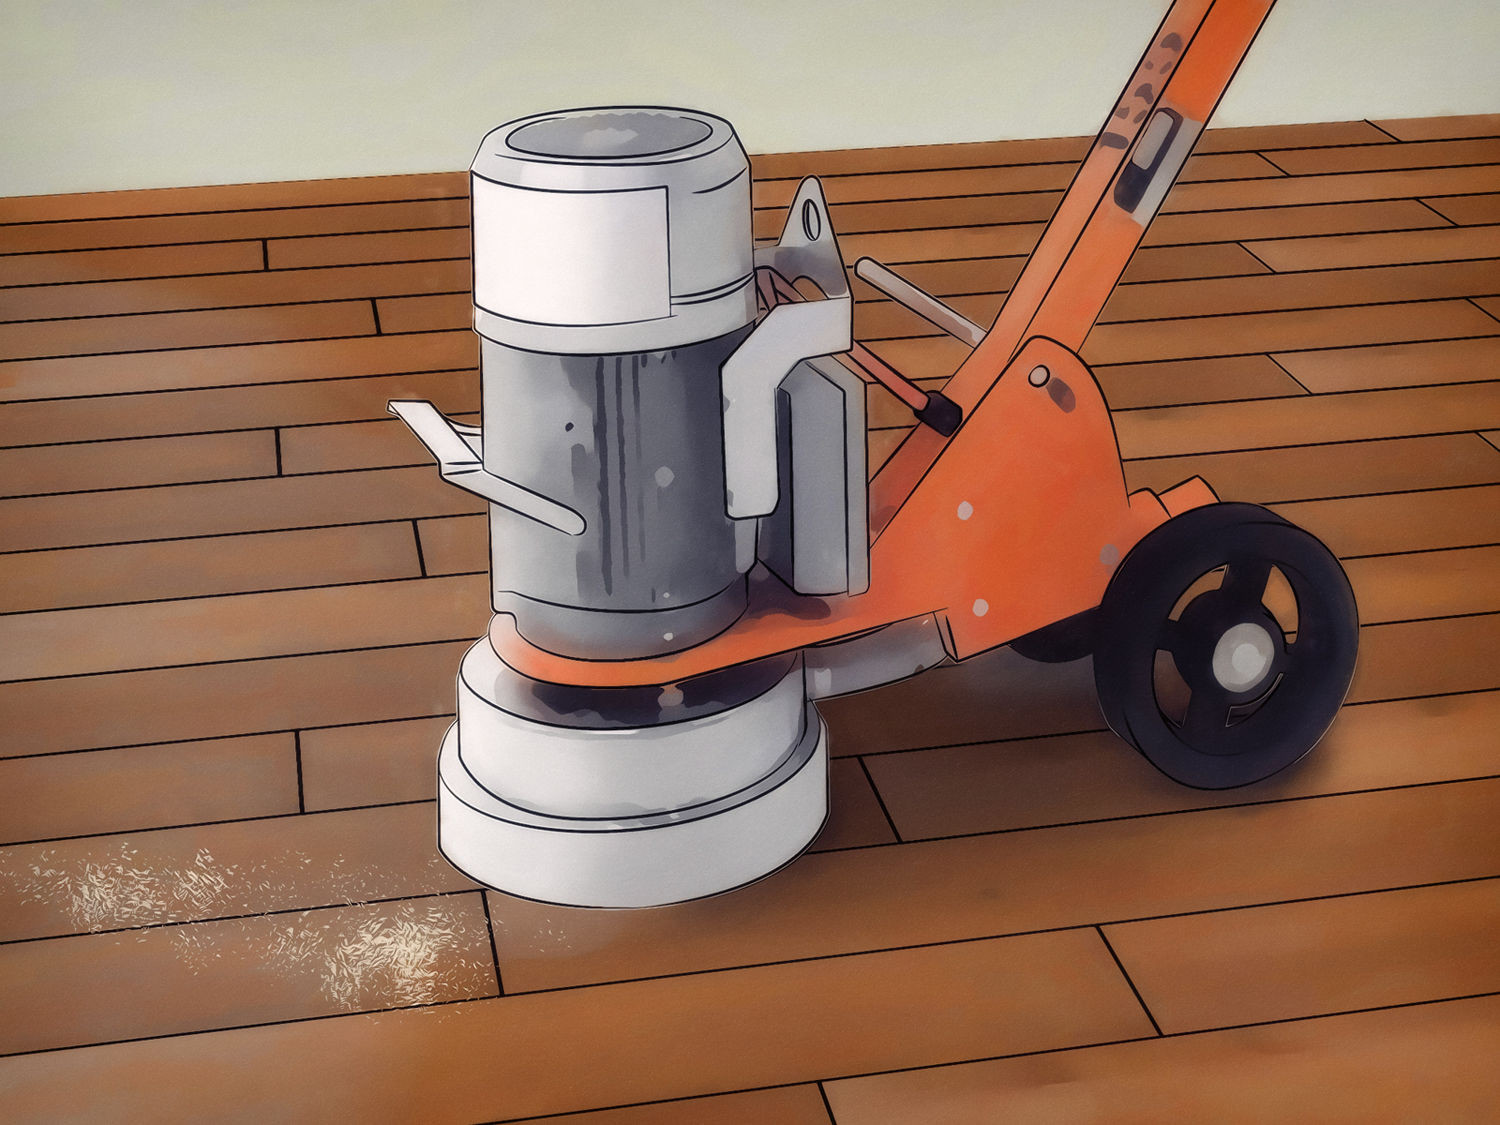 Filling Gaps In Hardwood Floors Sawdust Of How to Finish Hardwood Floors A Vripmaster within Gently Lower It Into Contact with the Floor once Its Begun to Spin